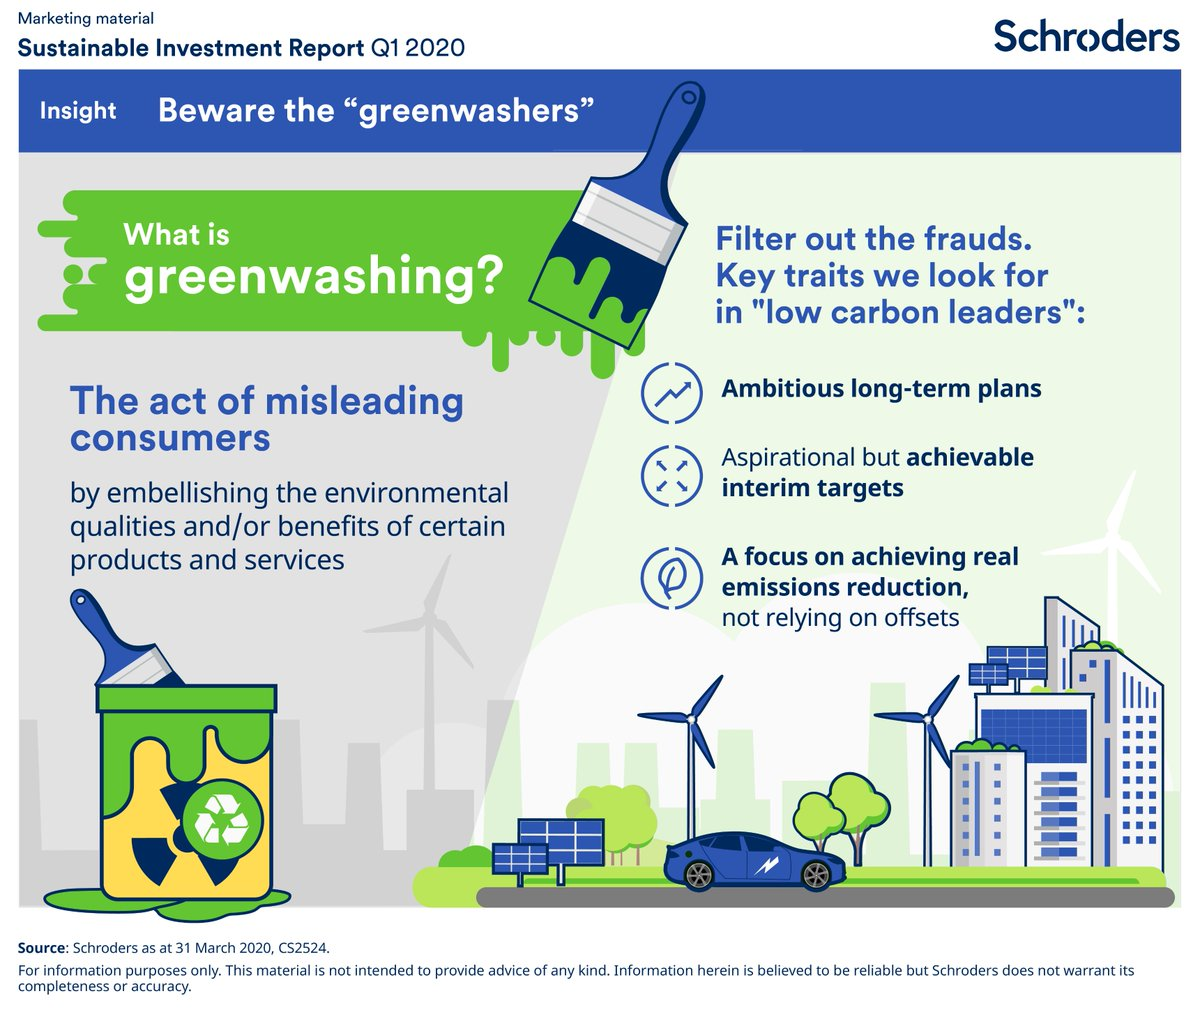 """ICYMI: The infographics from last quarter's sustainable investment report focused on identifying true """"low carbon leaders"""", our Global Cities Index, and our active ownership. Read our report here: https://t.co/une9557c9V  #sustainability #ESG #snapshot https://t.co/DsFeycmXSs"""